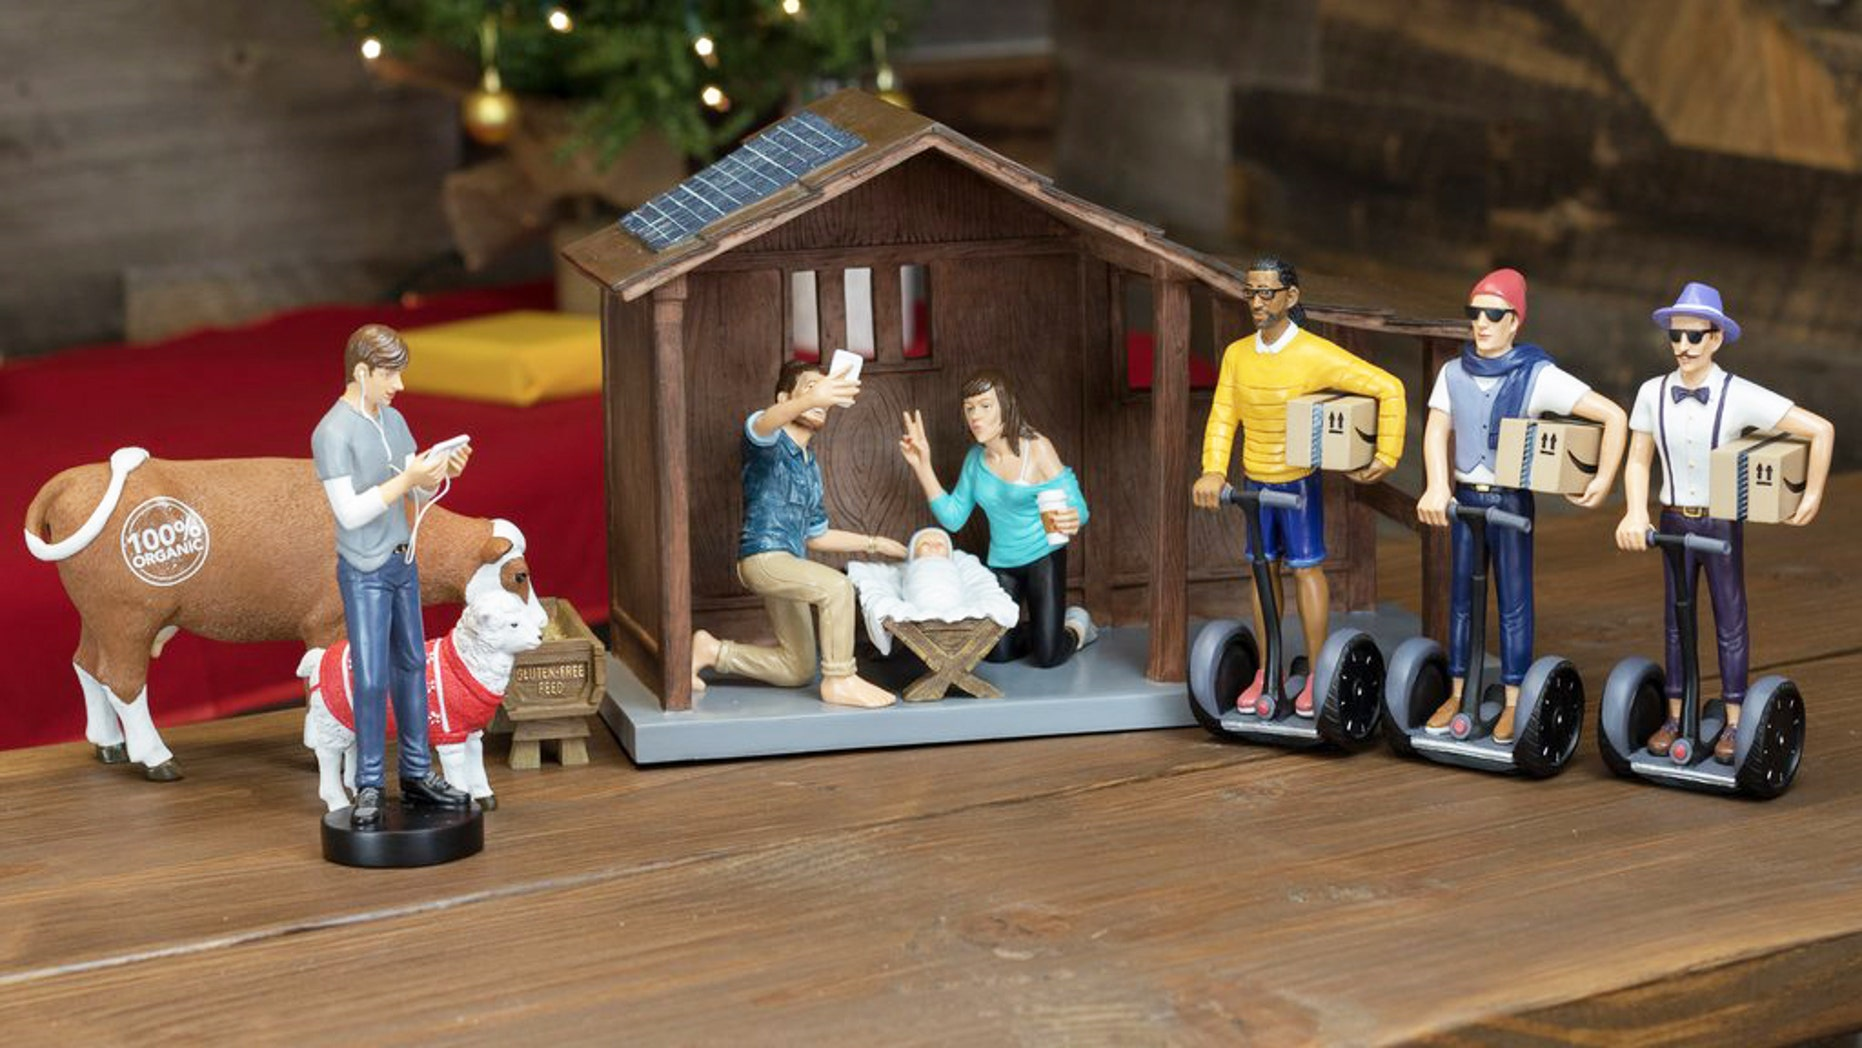 This nativity set is a modern take on the traditional manger scene.